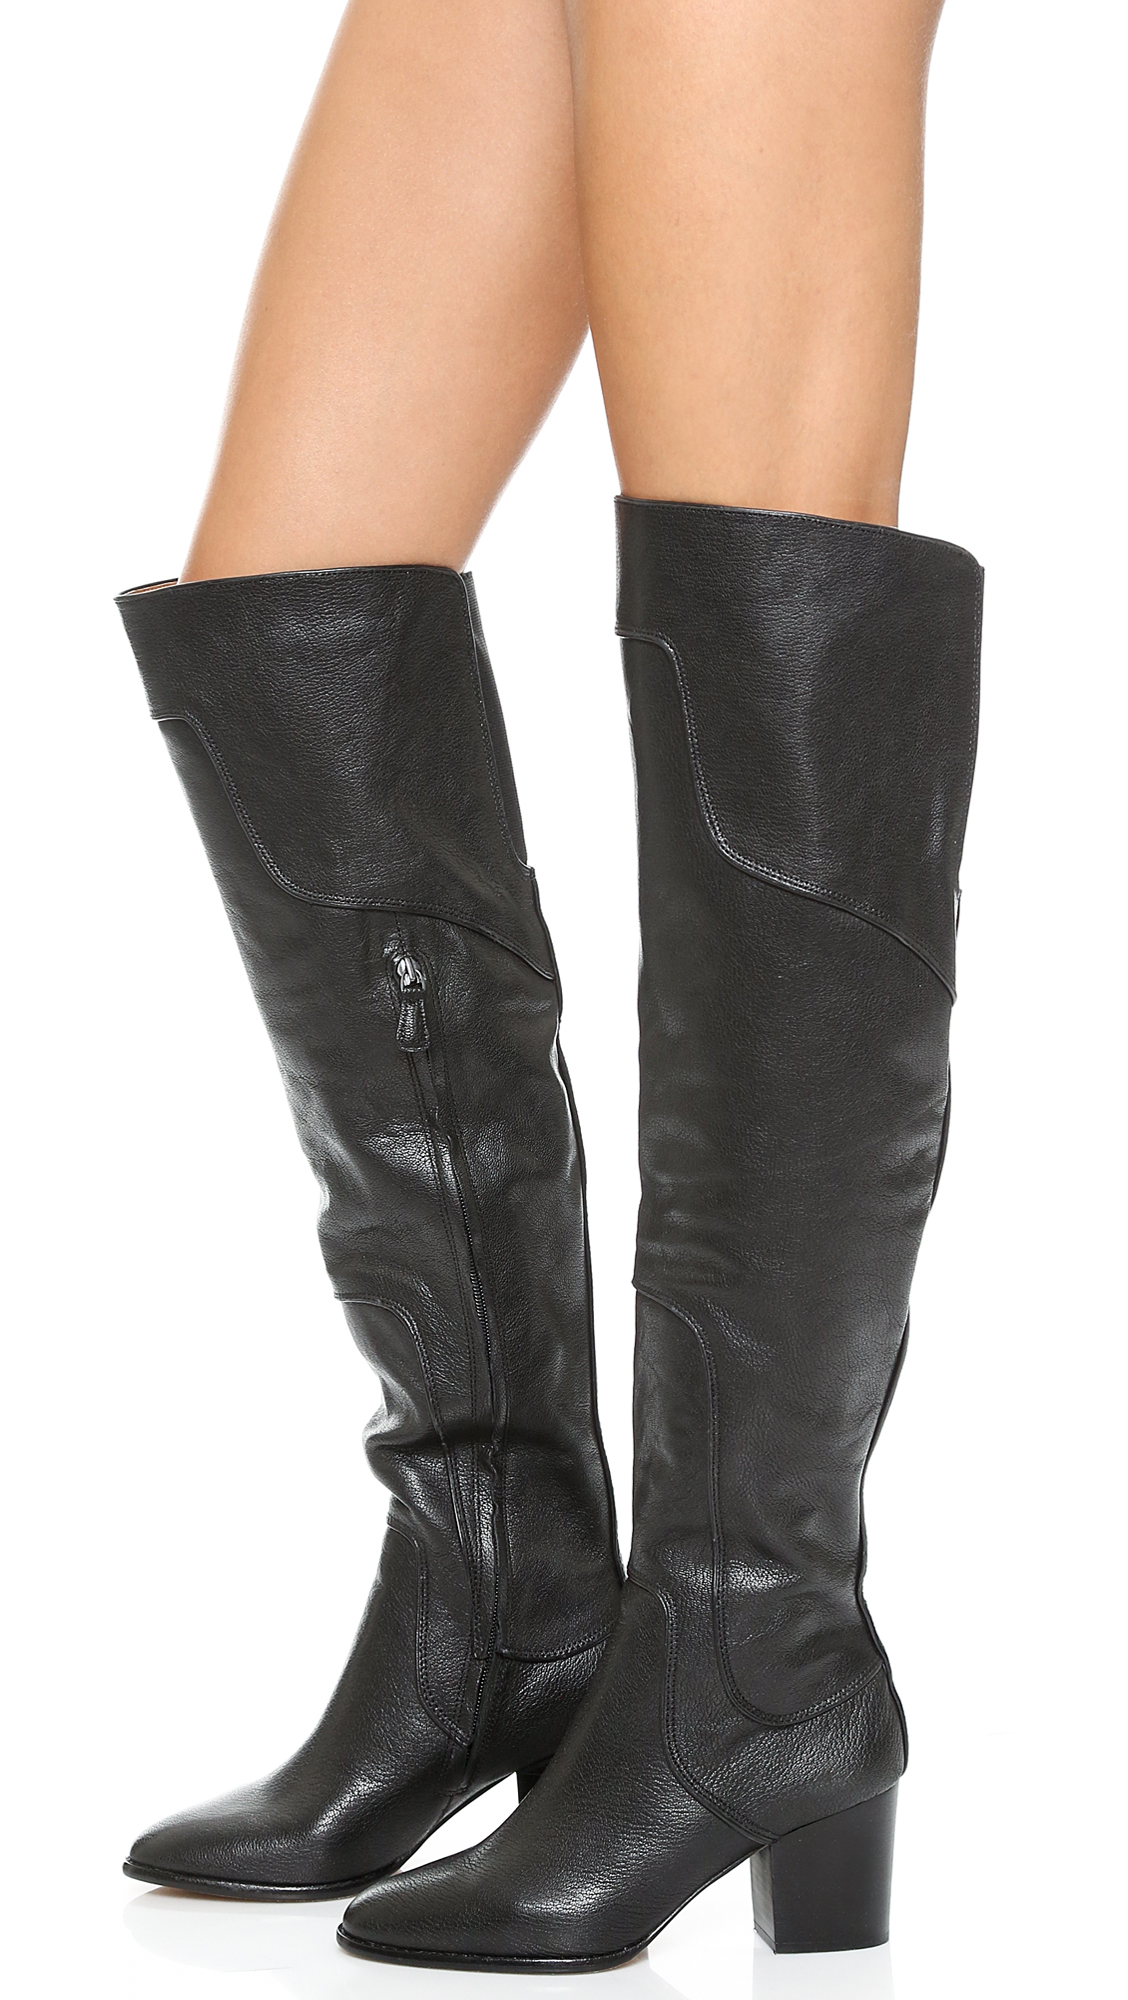 d5017106802 Rebecca Minkoff Blessing Over The Knee Boots